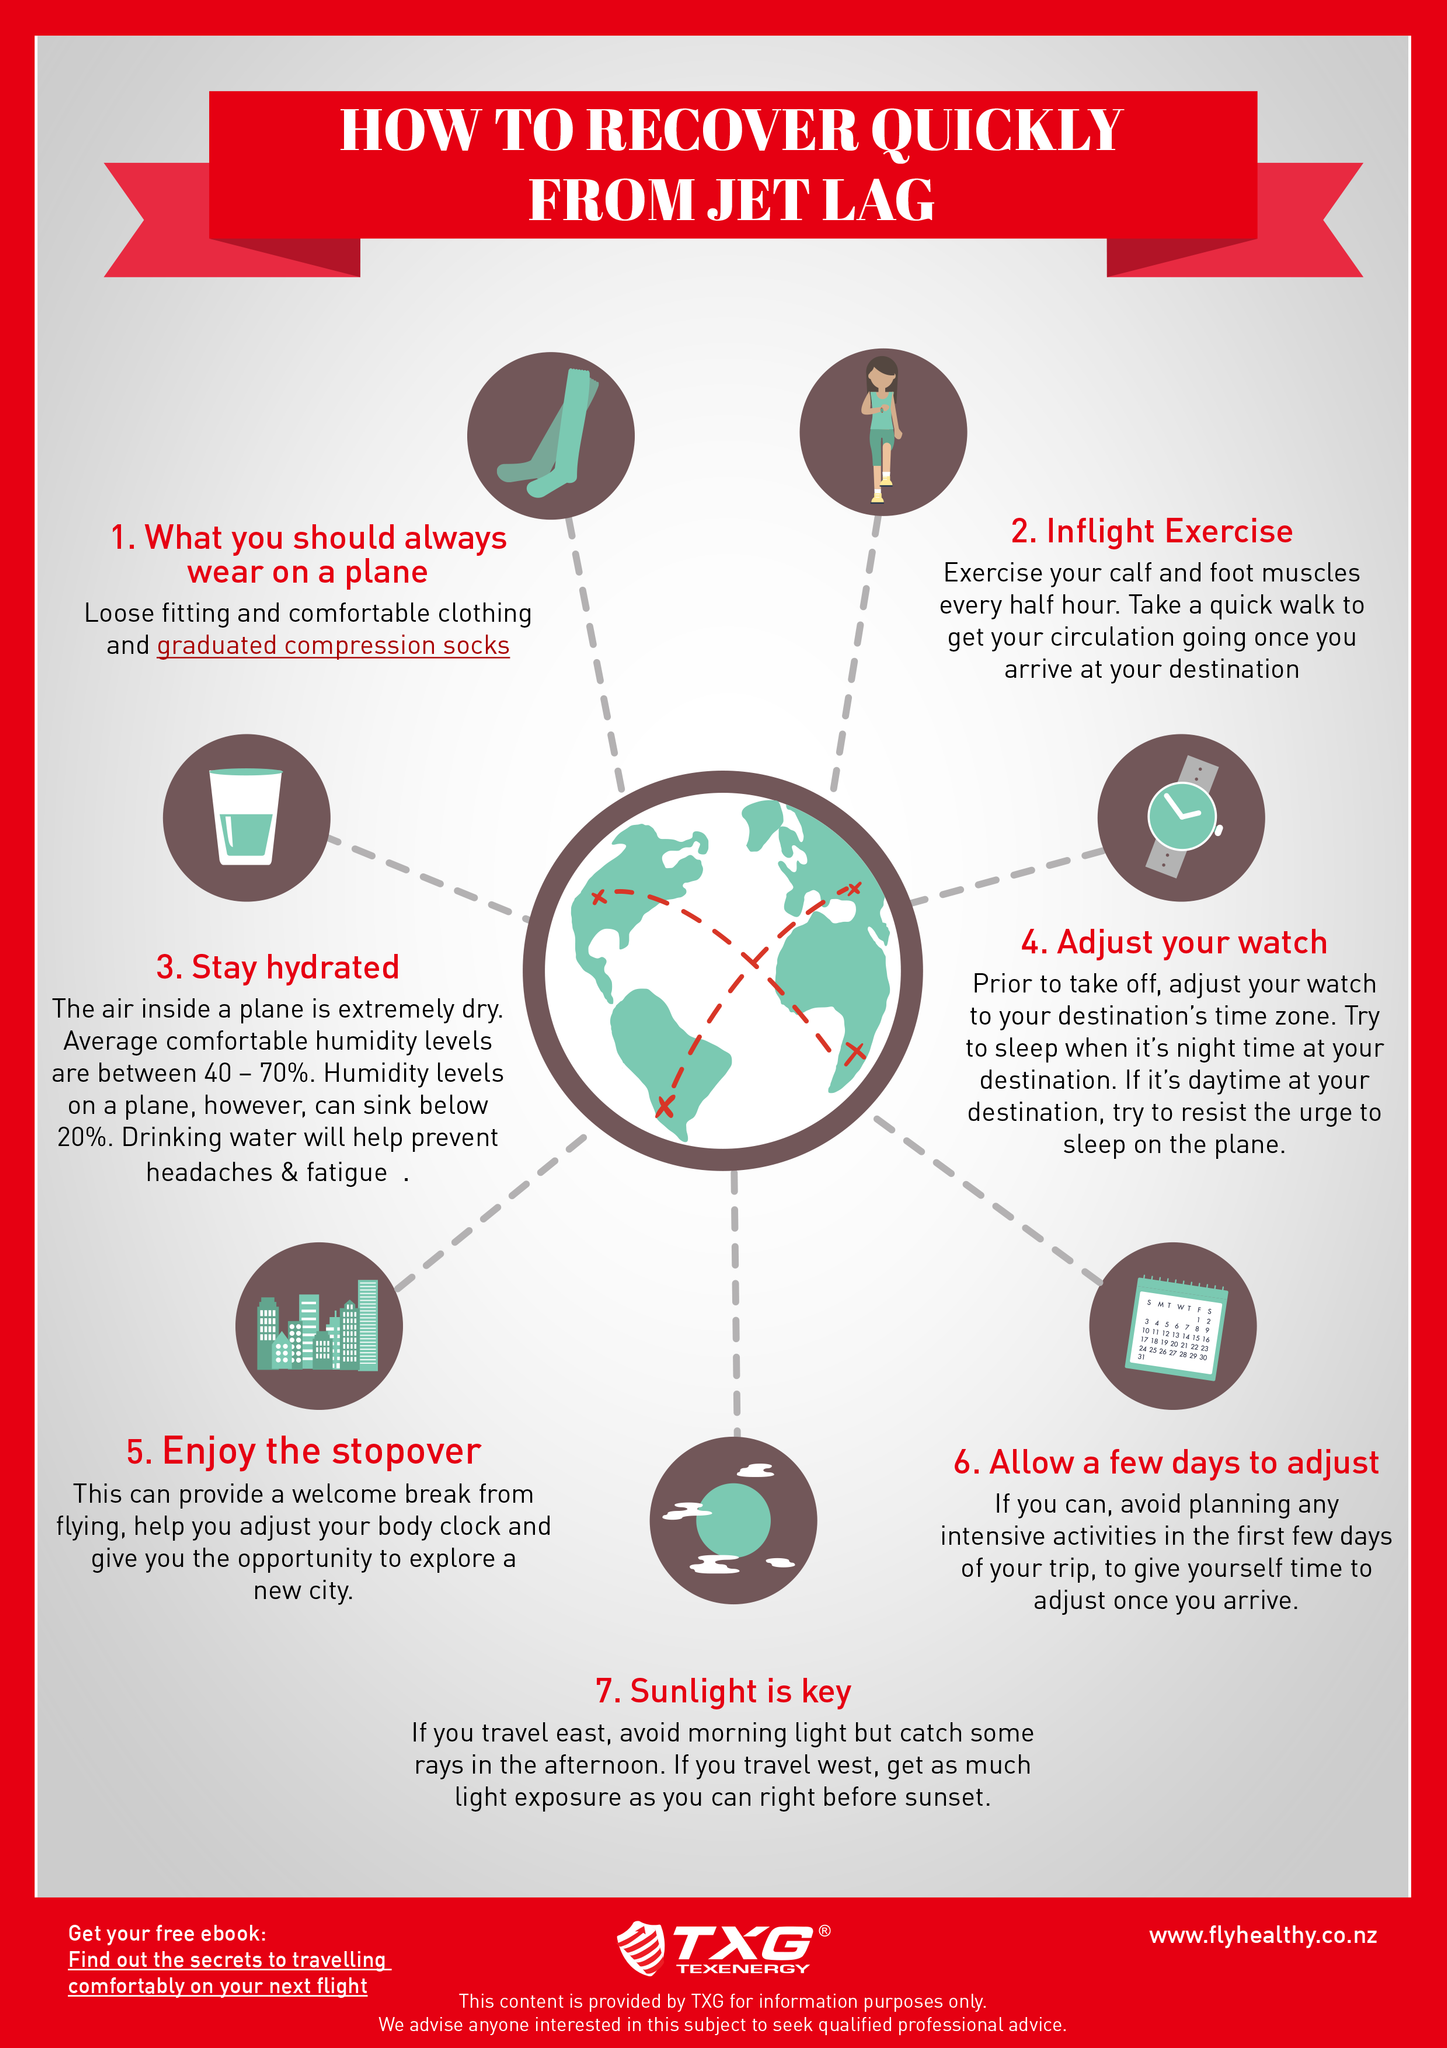 How to recover quickly from jet lag infographic from fly healthy with txg